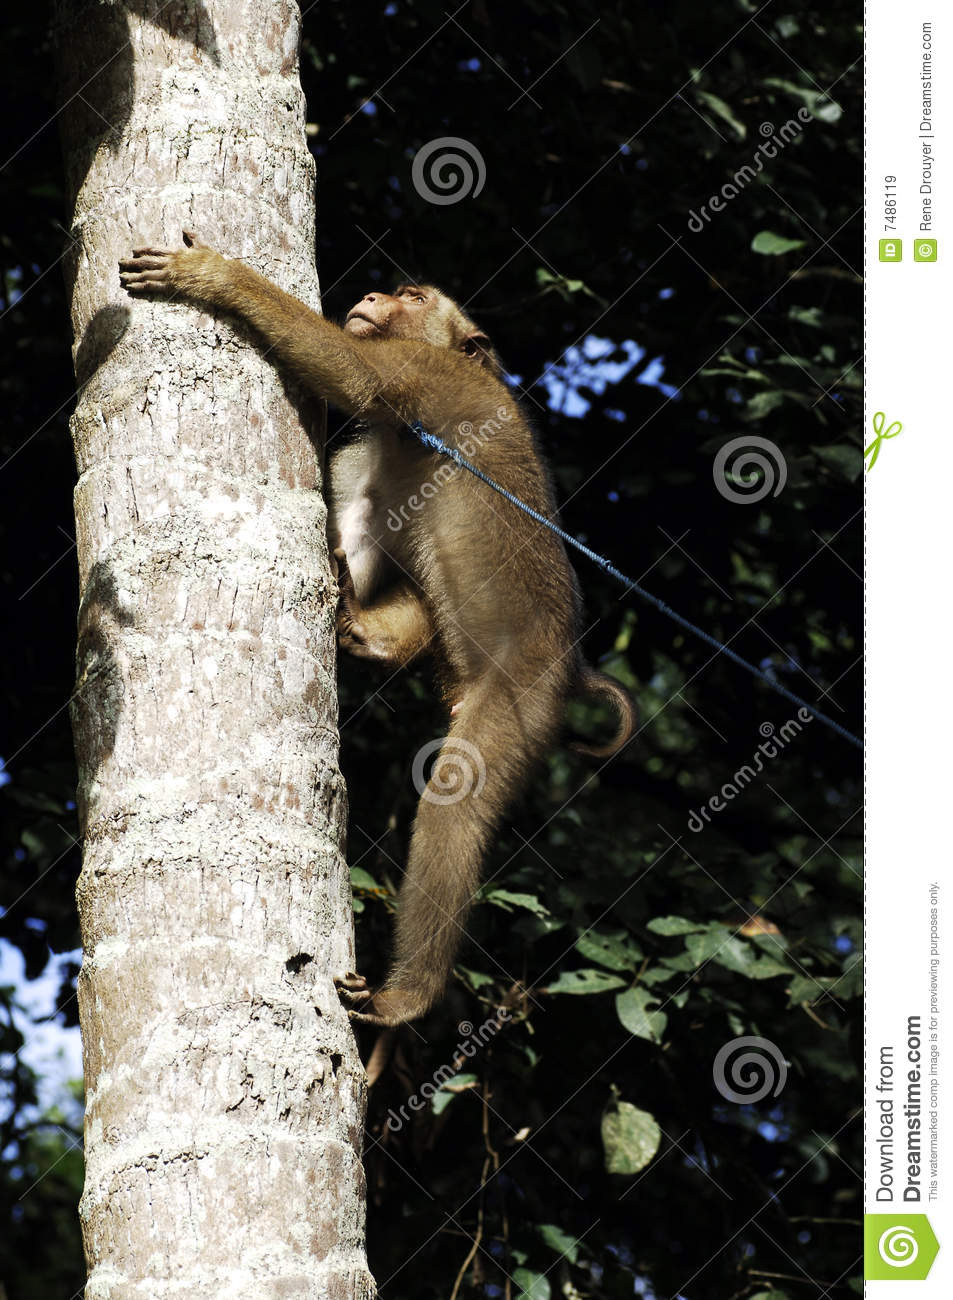 monkey climbing a coconut tree royalty free stock images